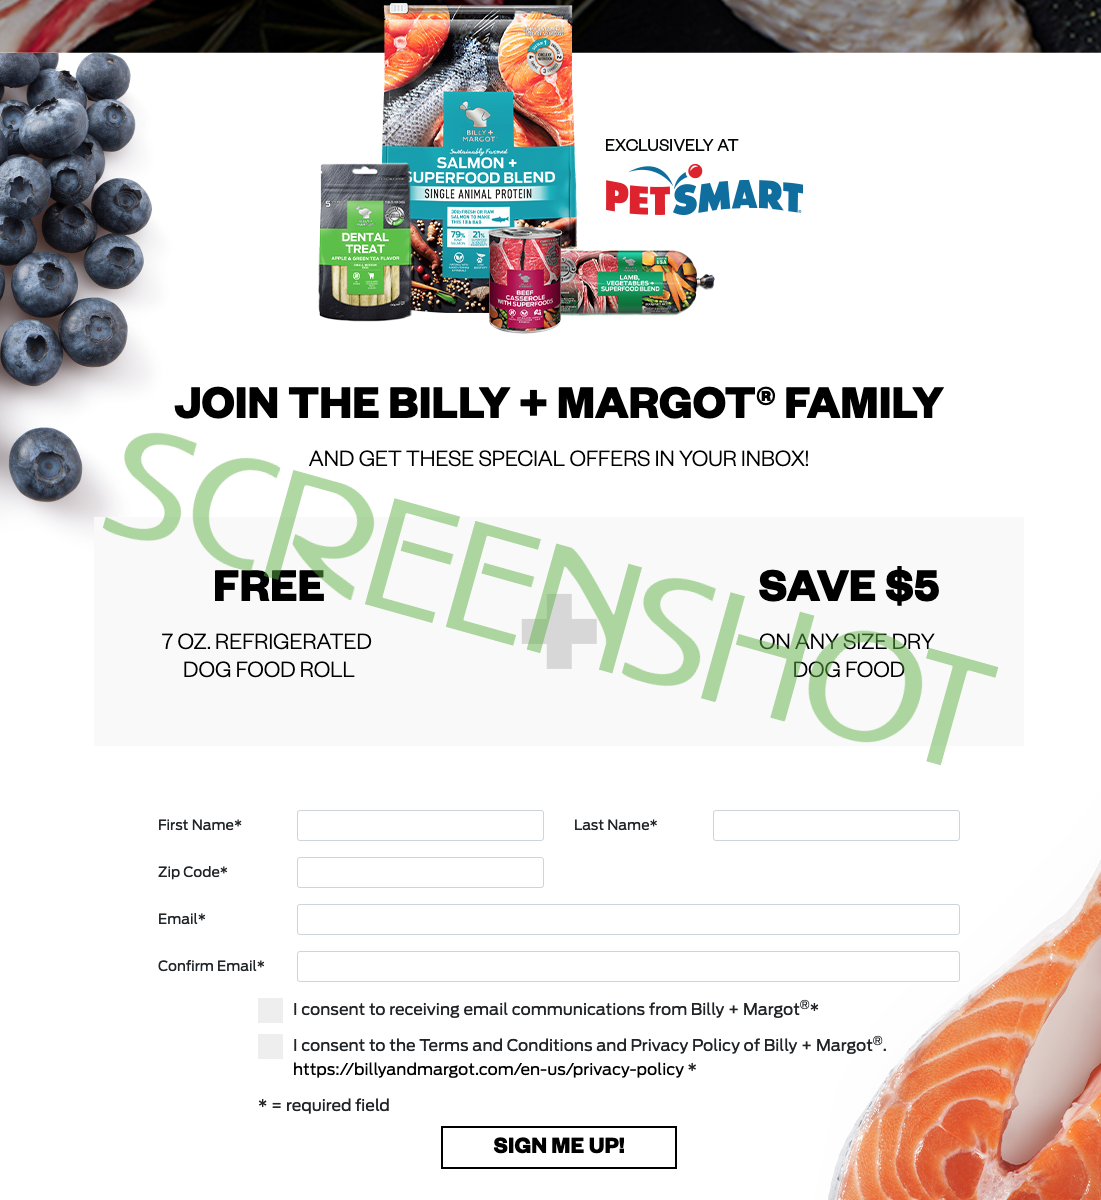 Screenshot of FREE 7 oz Refrigerated Dog Food Roll coupon offer on the Billy + Margot  website